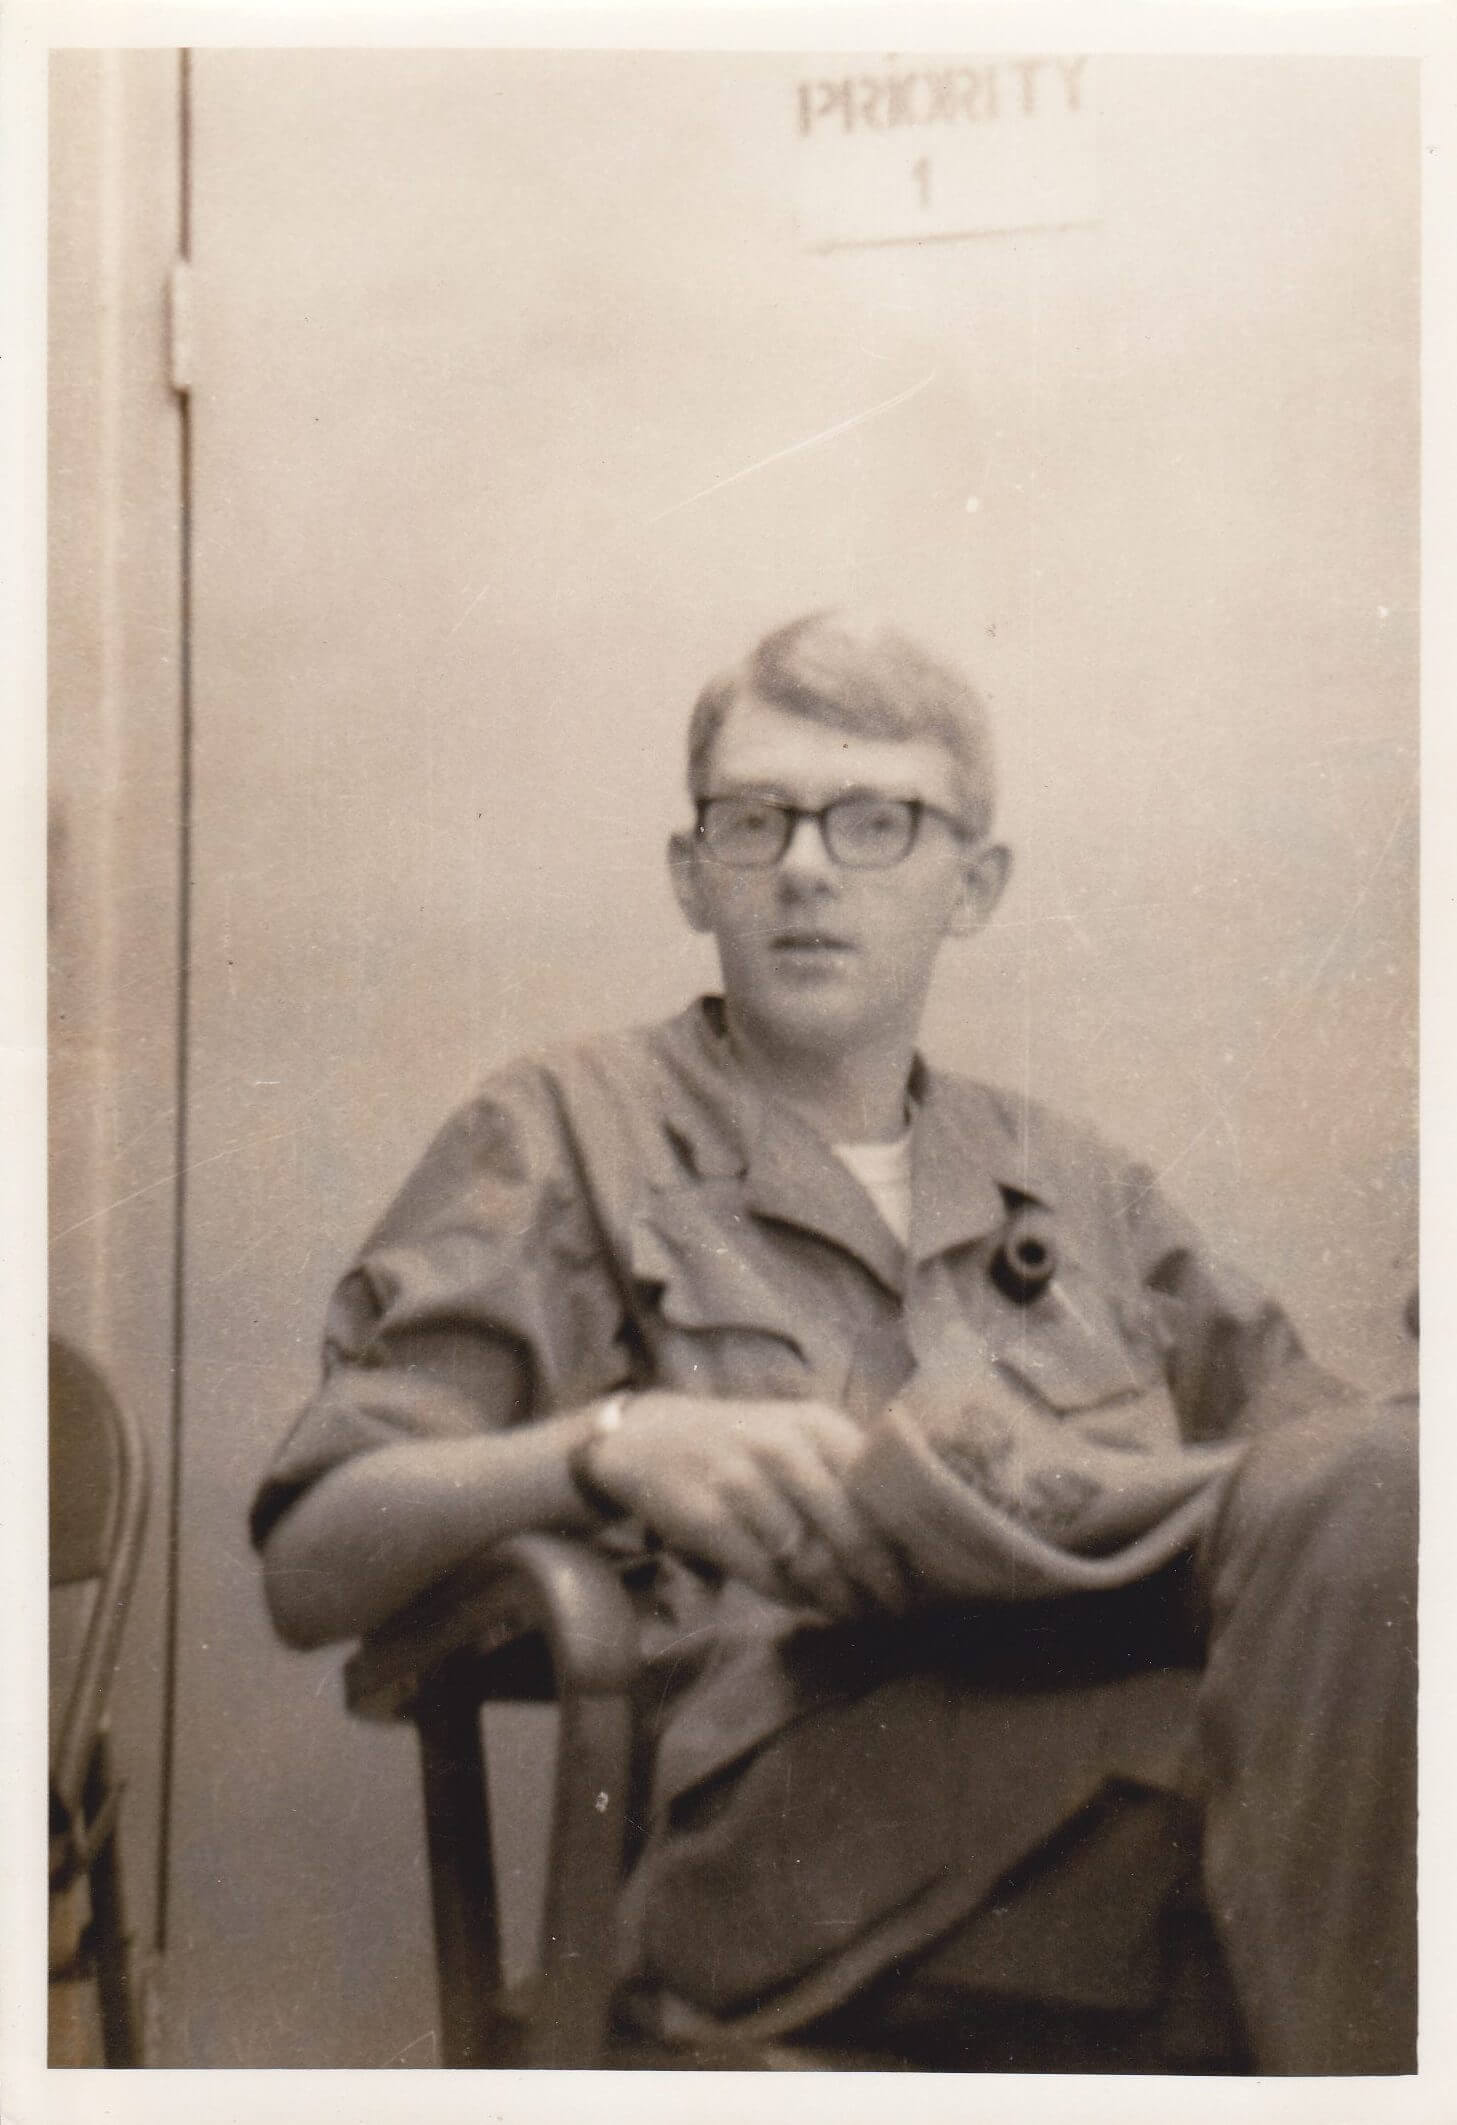 Young soldier with glasses, sitting and reading a newspaper.